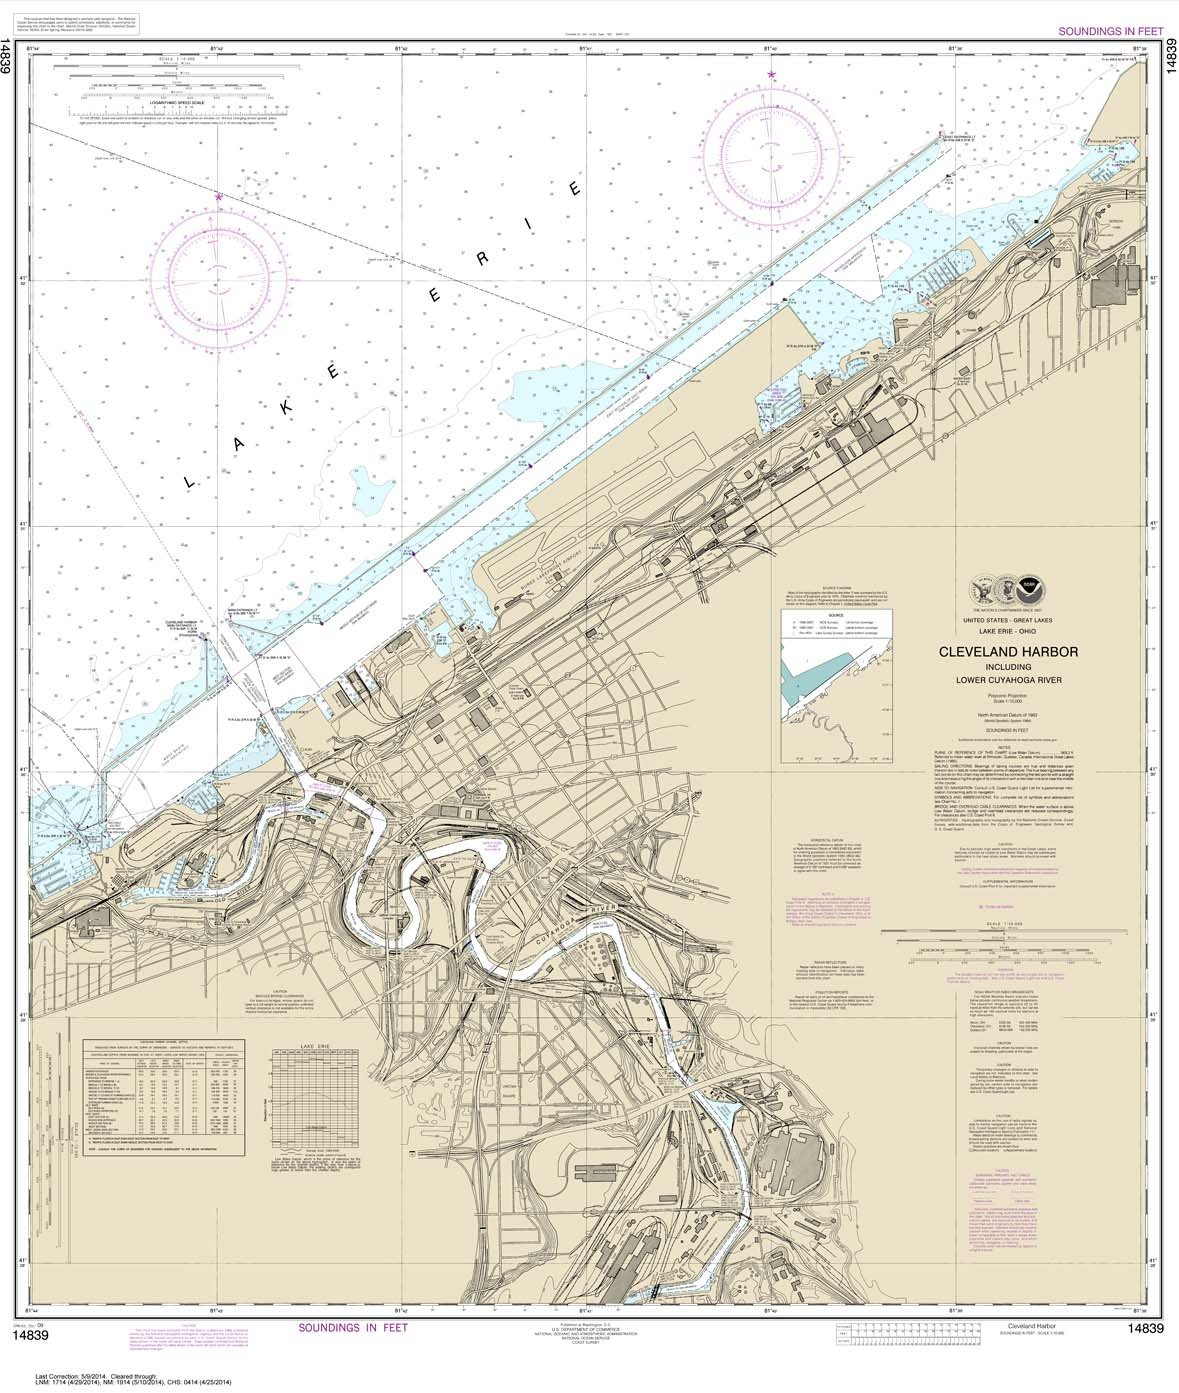 Paradise Cay Publications NOAA Chart 14839 including lower Cuyahoga River 41.3 x 35 TRADITIONAL PAPER Cleveland Harbor